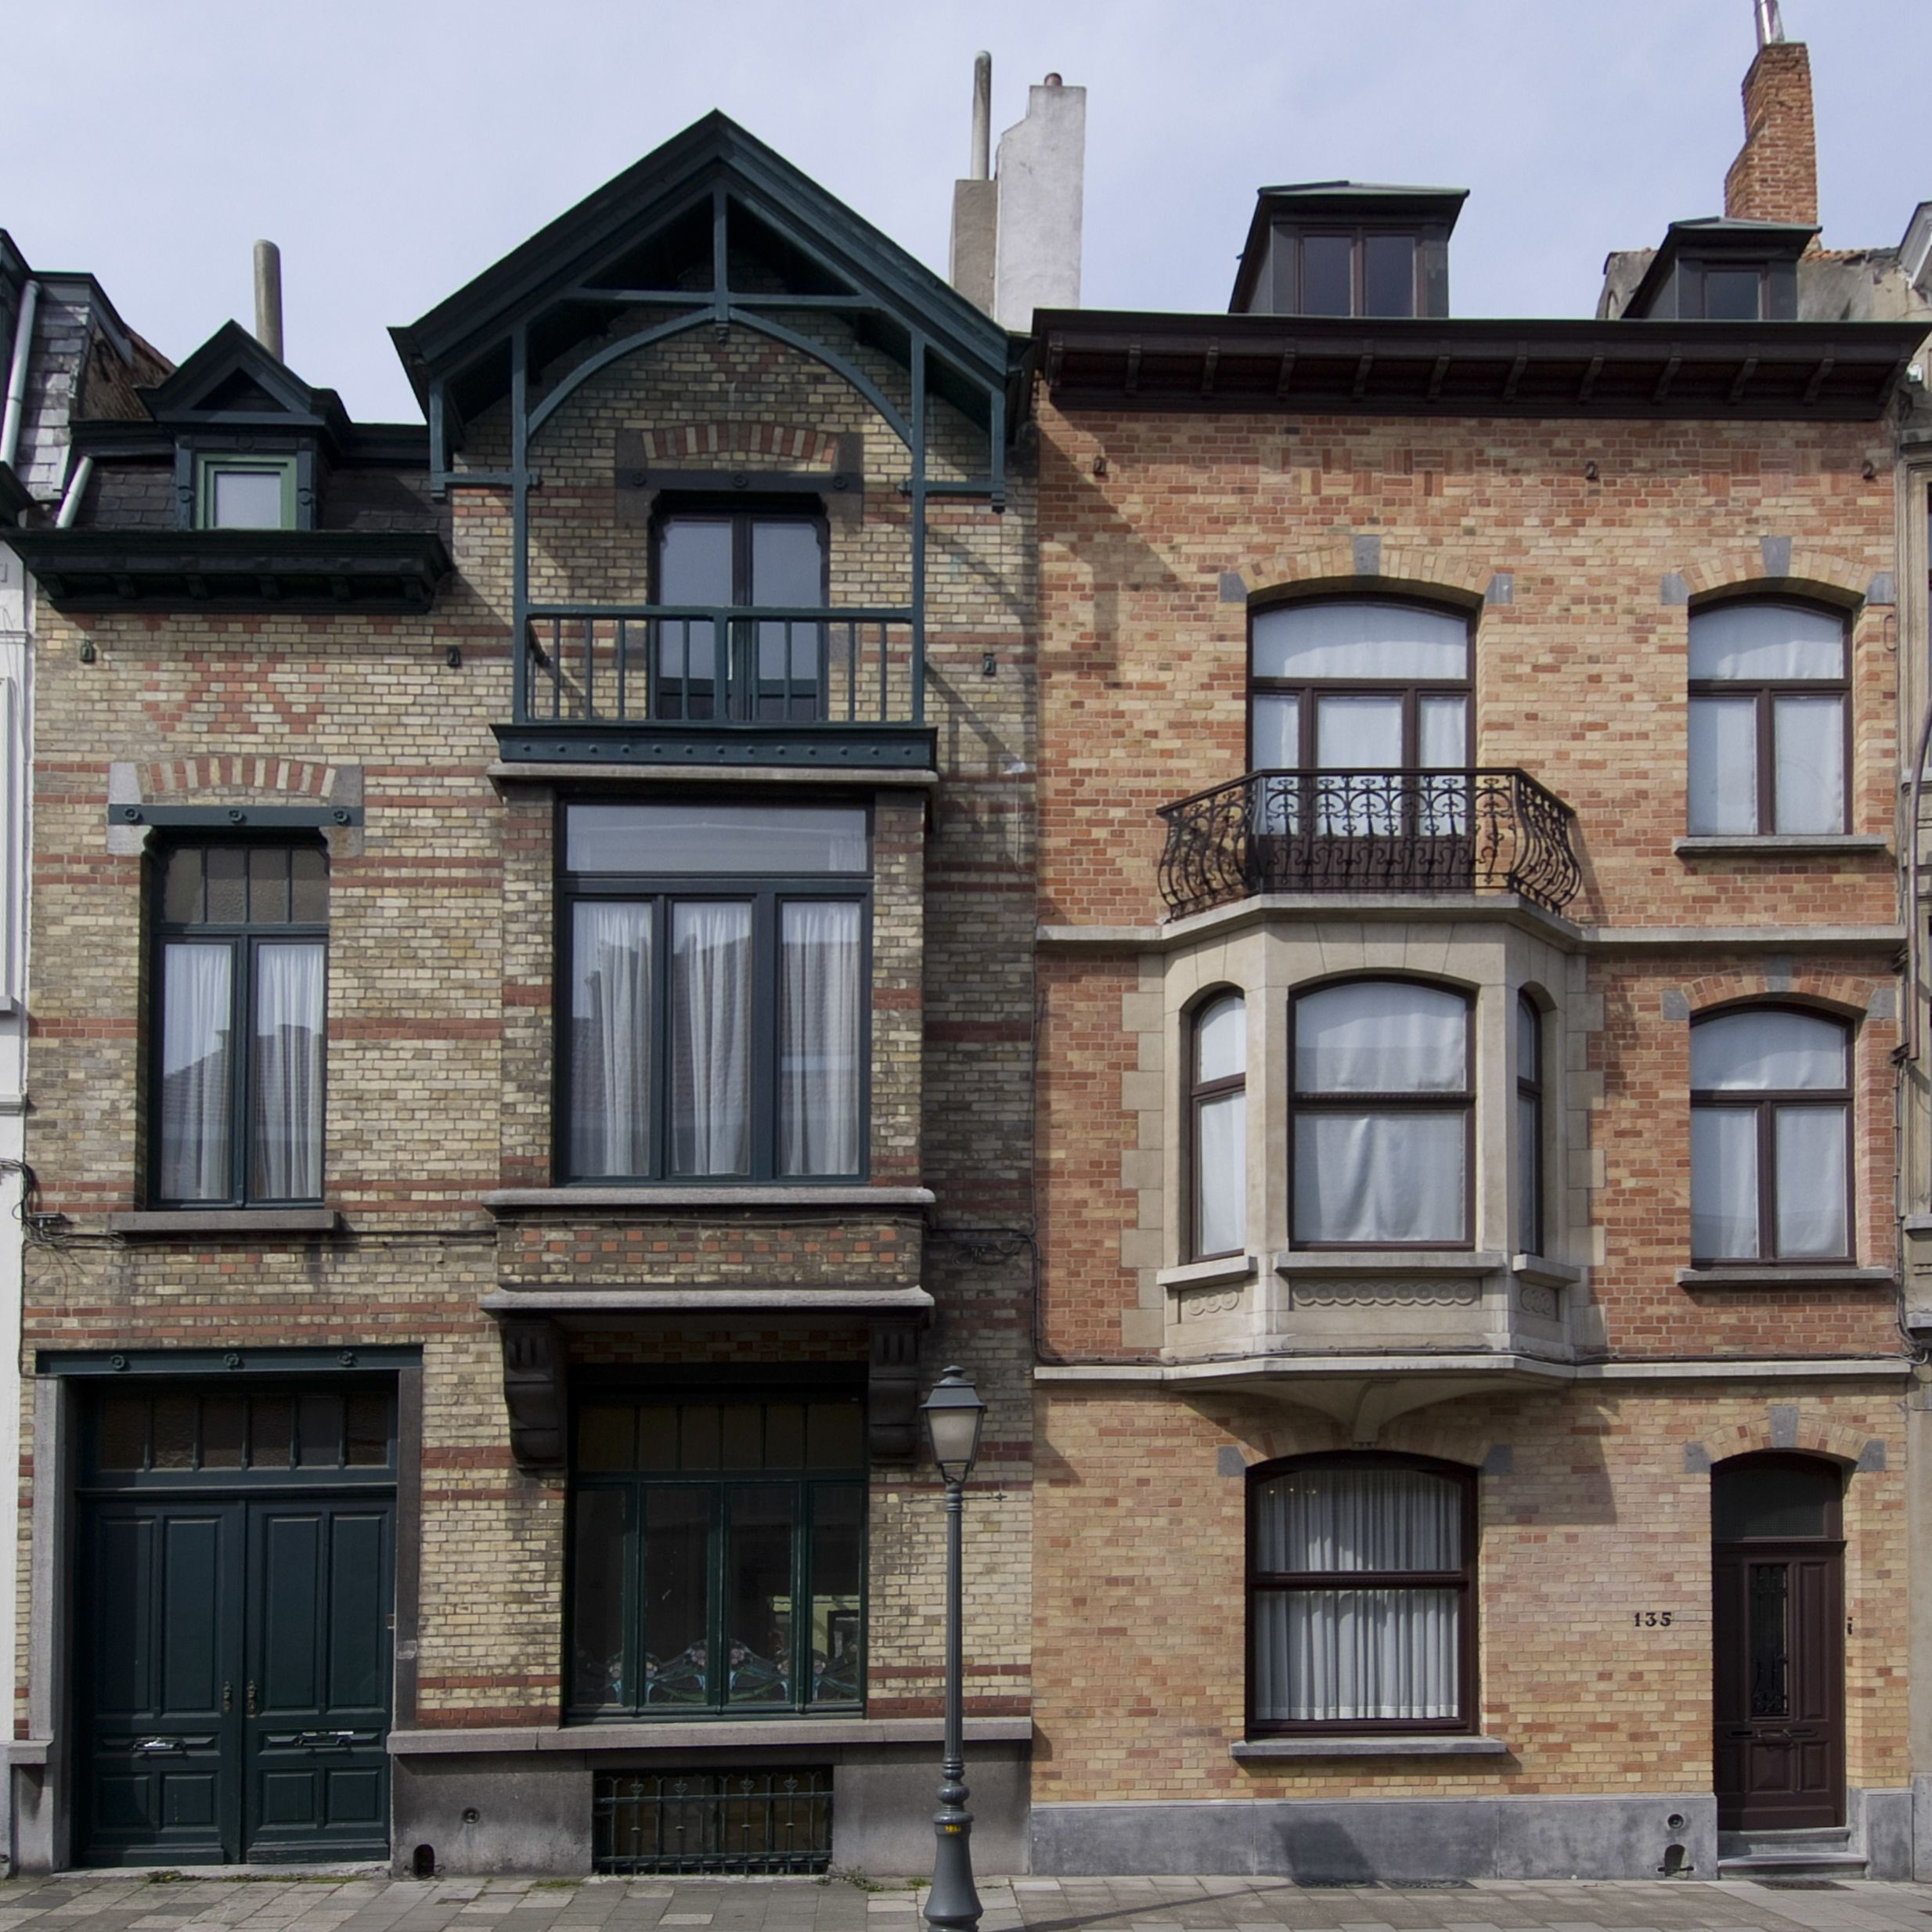 Musee-Rene-Magritte-Maison.